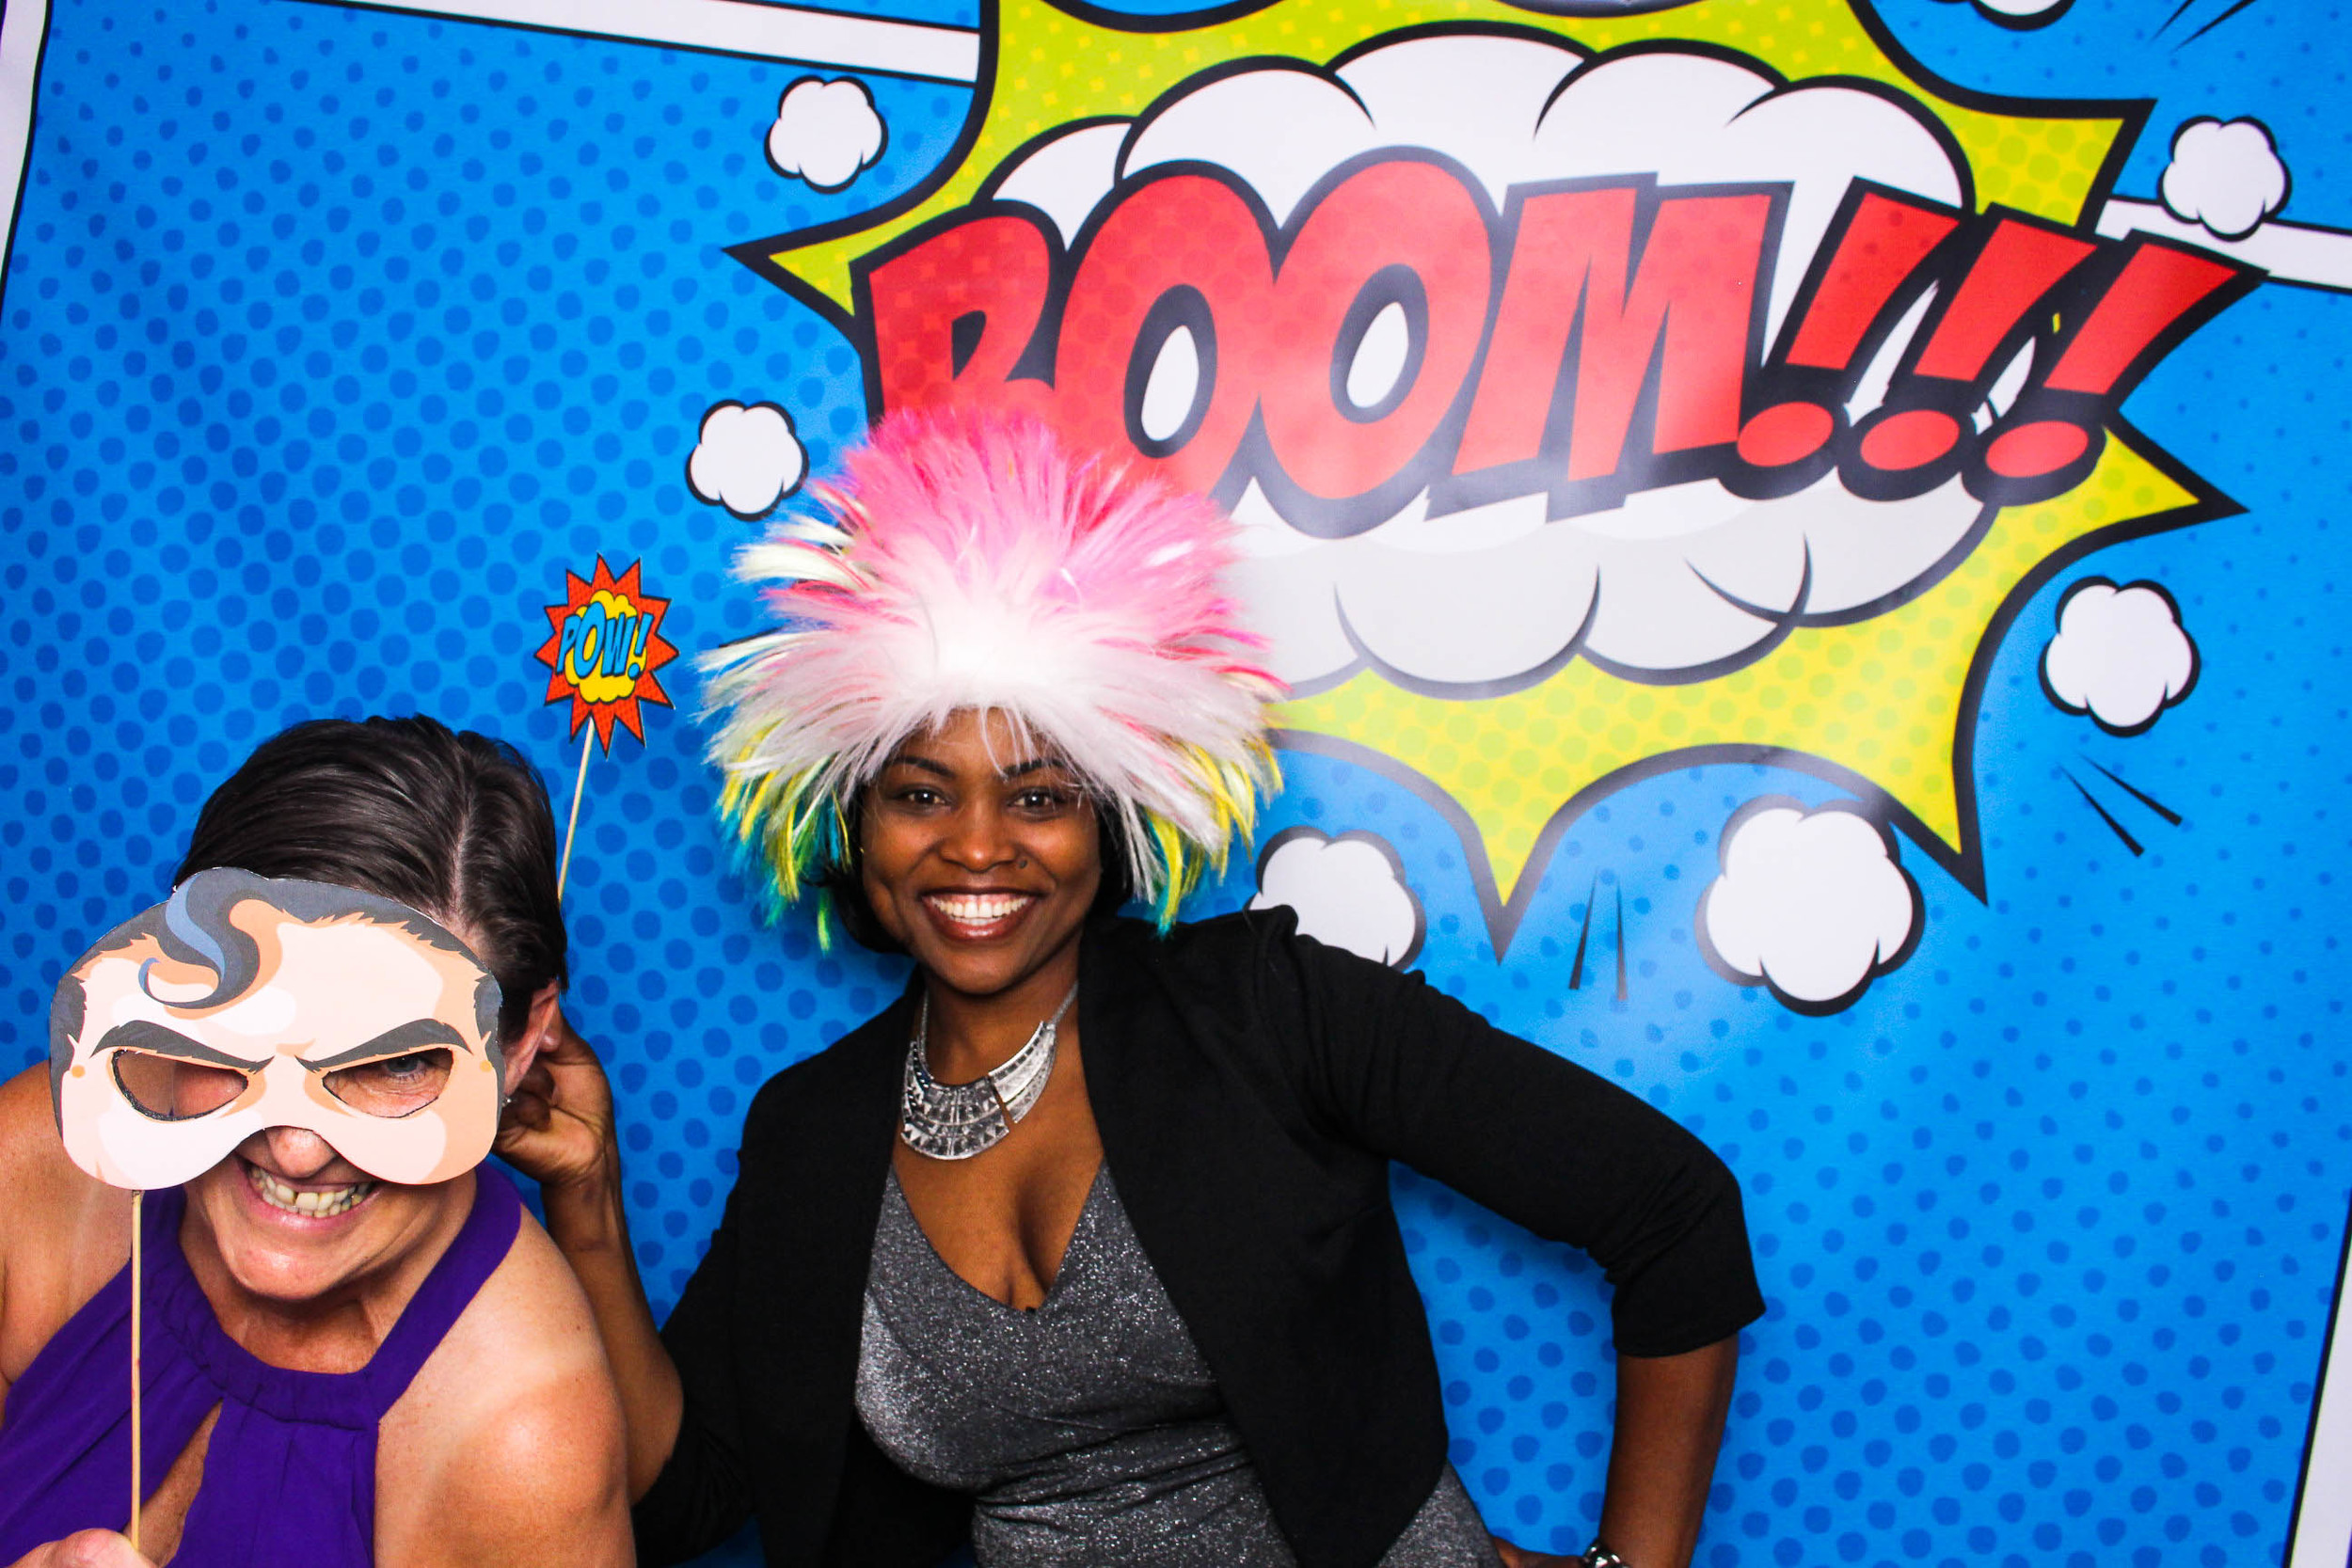 Fotoauto Photo Booth Hire - Shop Direct-229.jpg